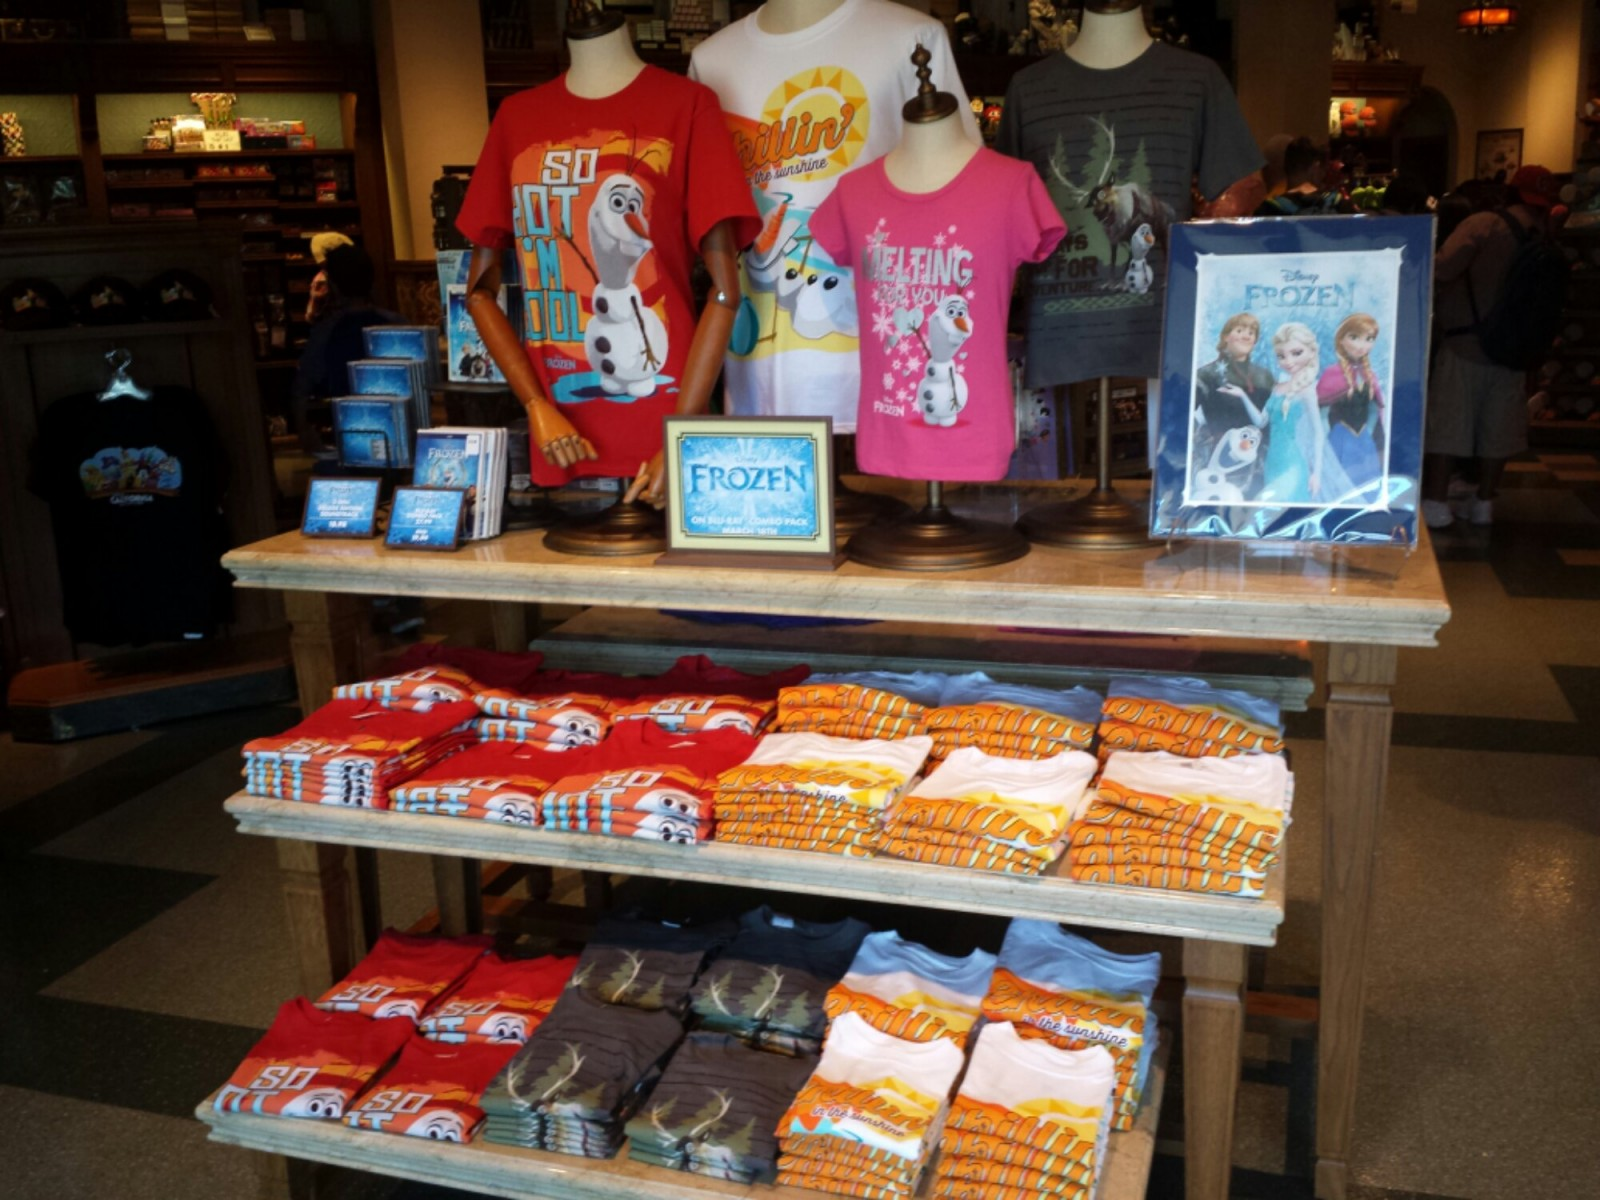 A selection of Frozen merchandise as you enter the Five and Dime on #BuenaVistaStreet